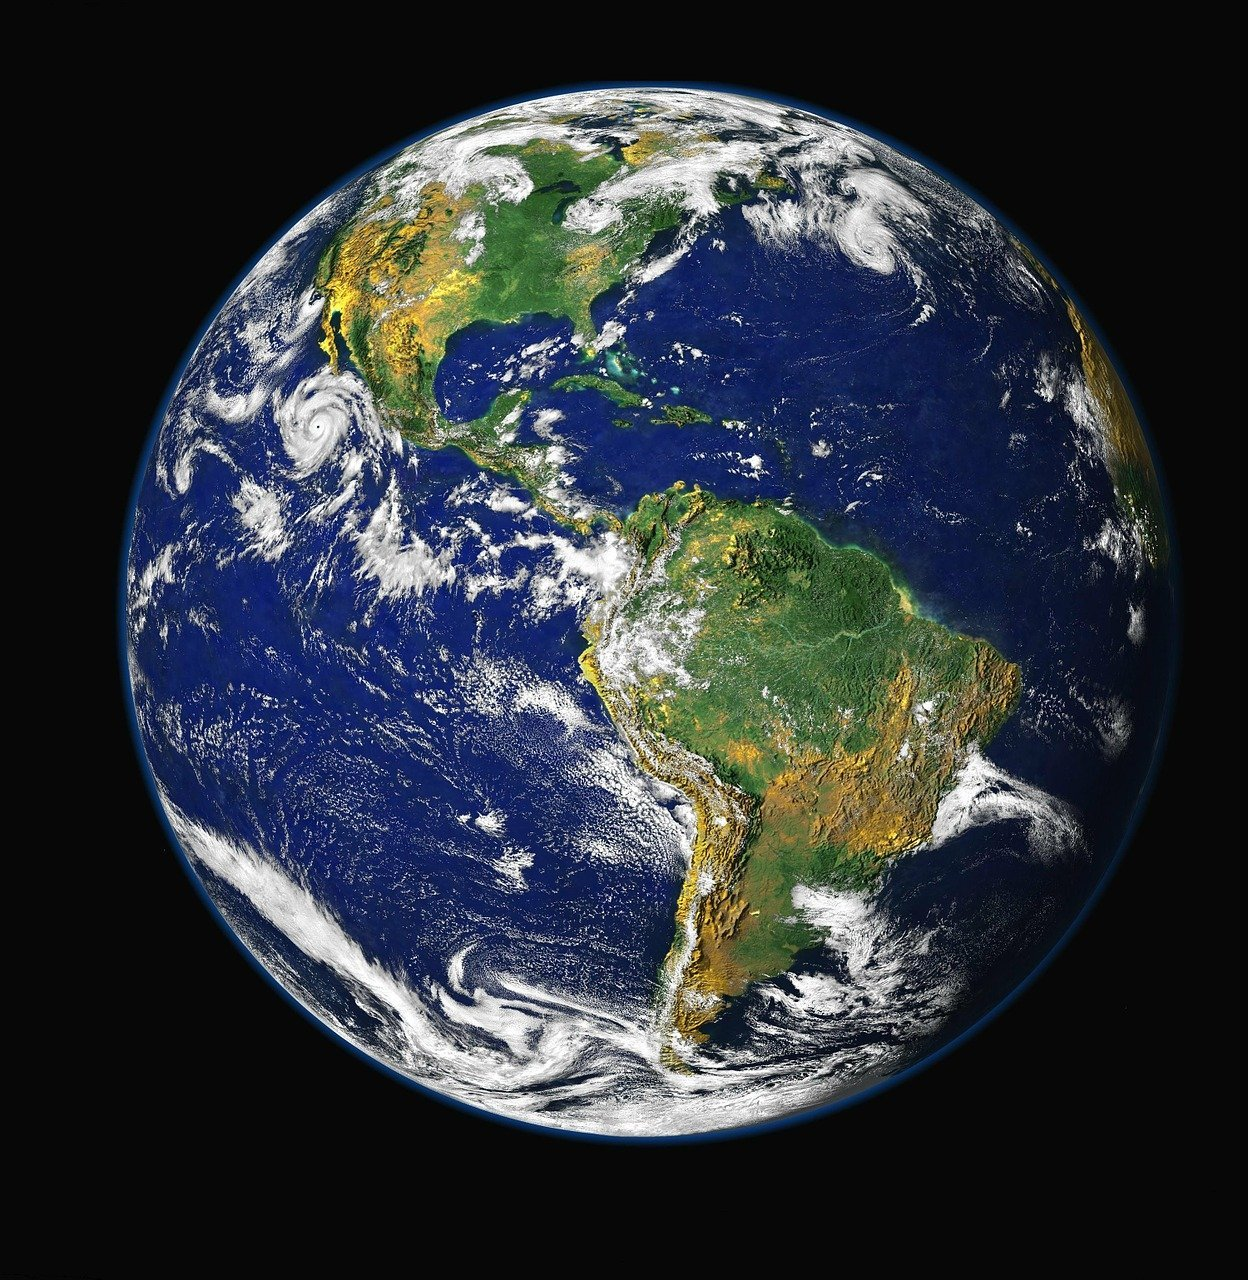 A close-up image of the planet Earth   Photo: Pixabay/WikiImages